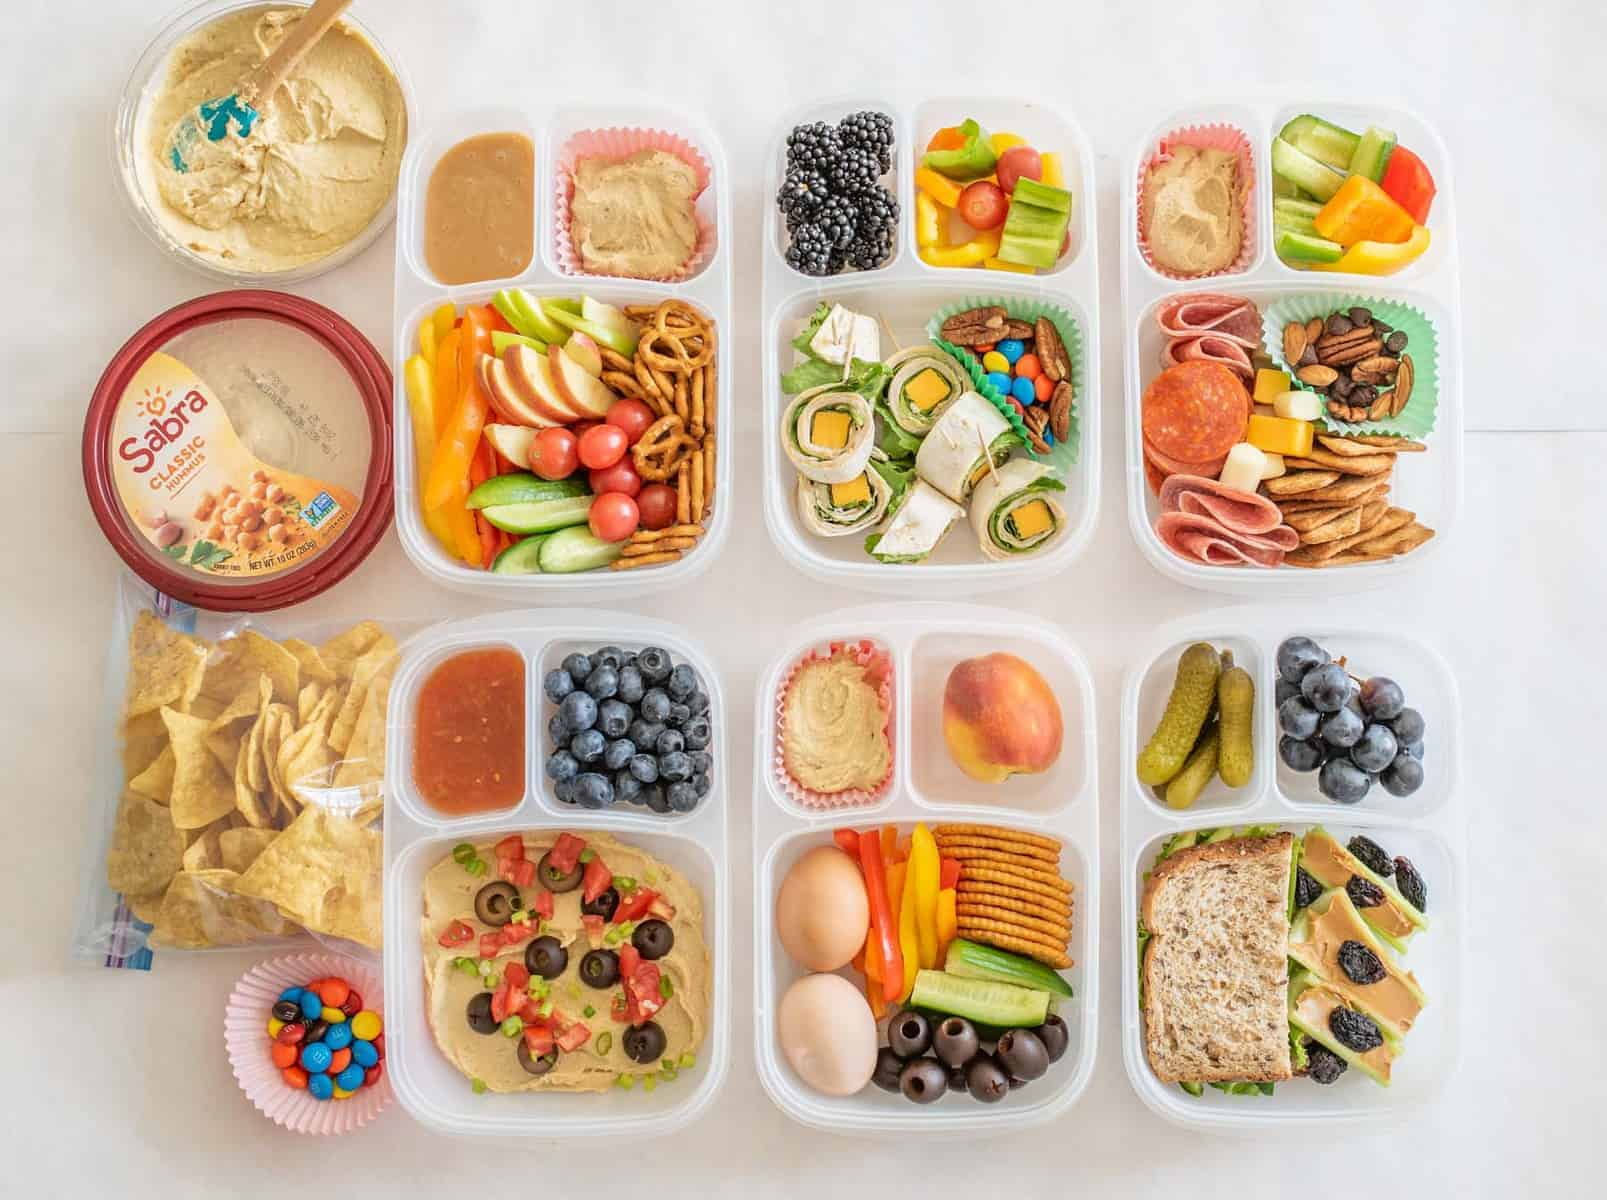 Six quick and easy school and adult lunch box ideas made with Sabra Hummus, fruit, vegetables, and more.